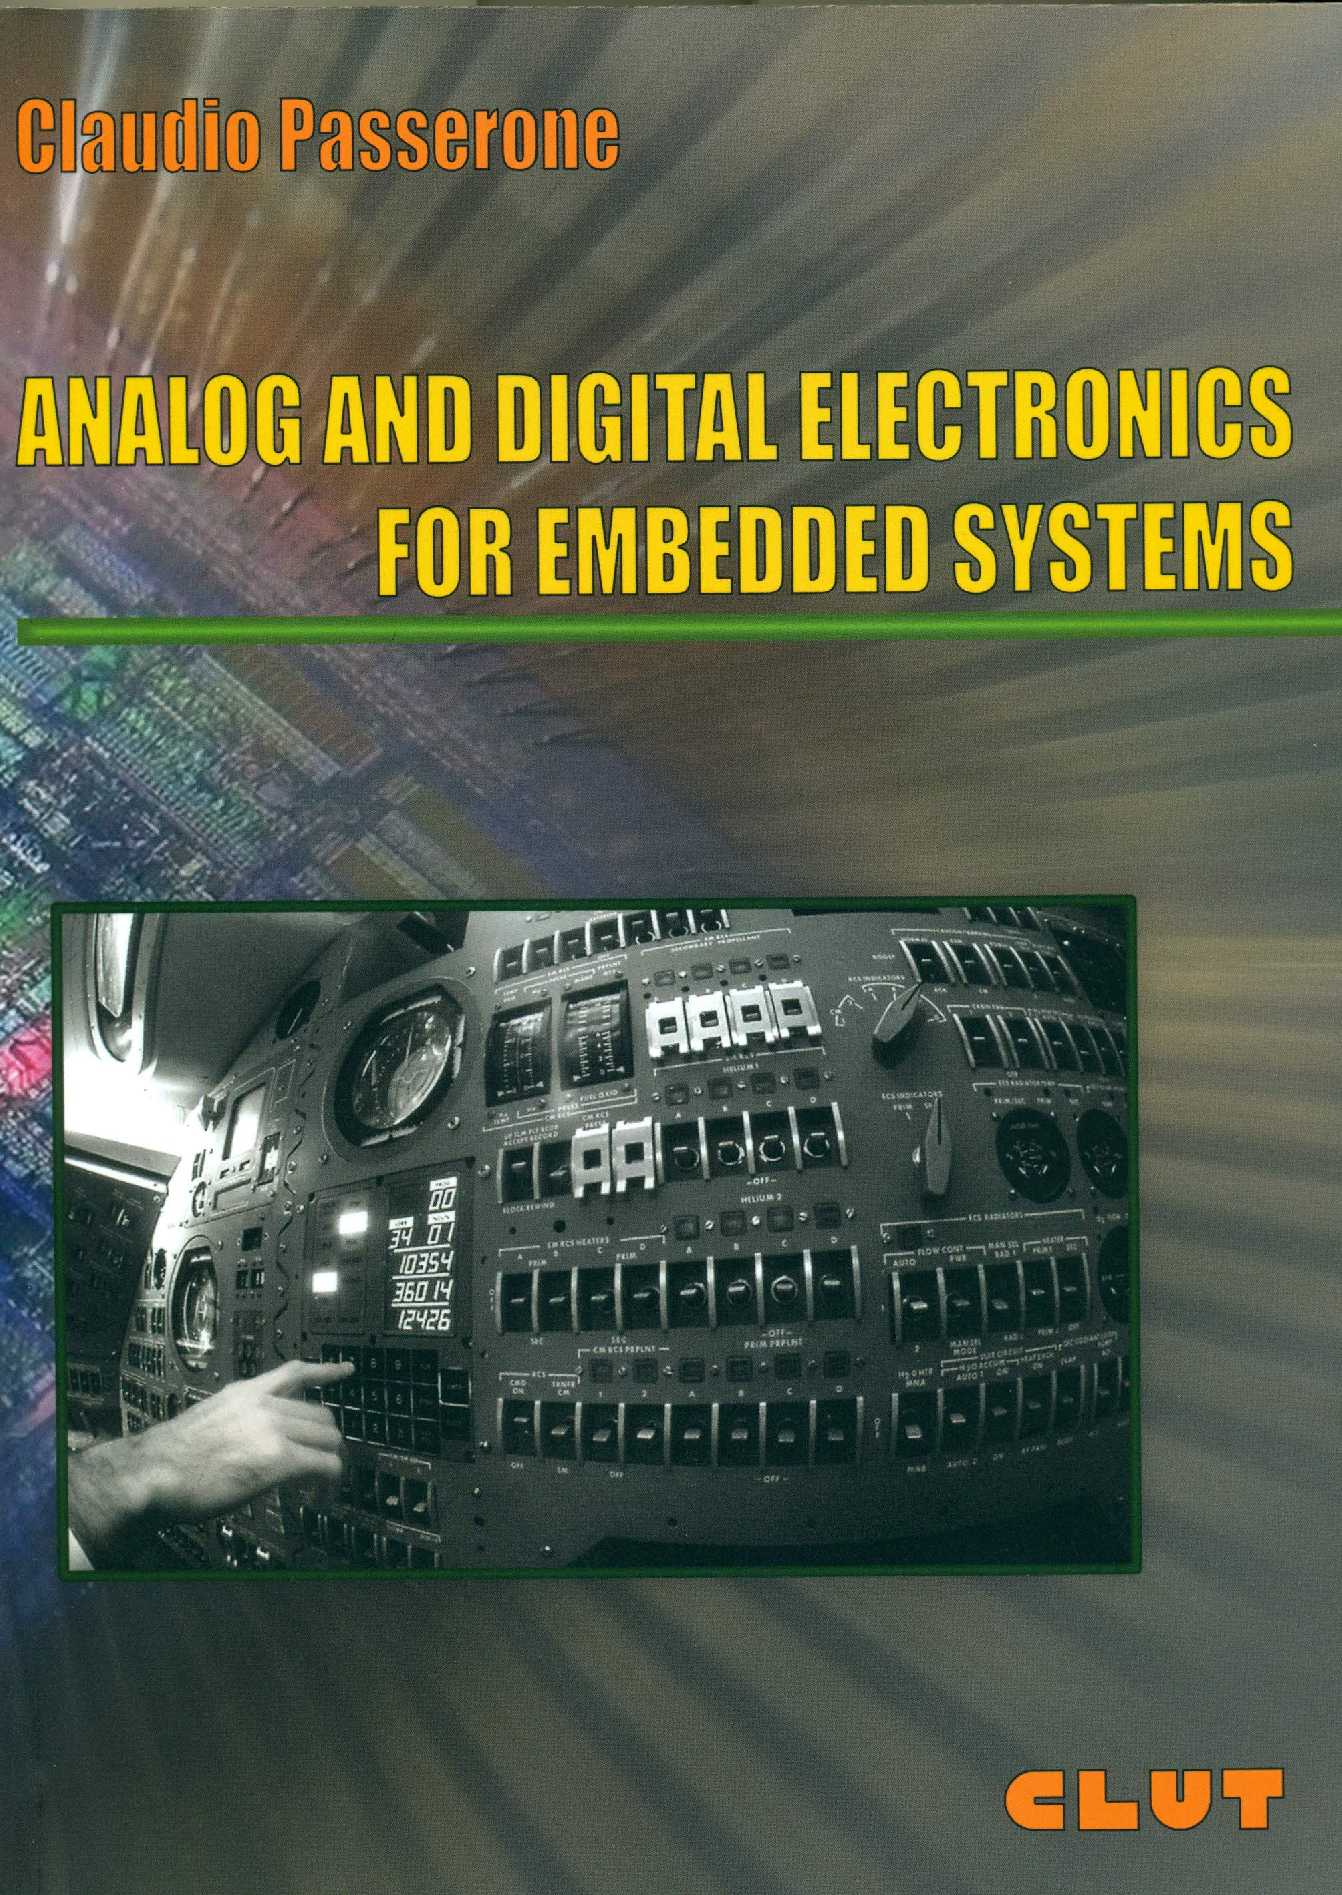 ANALOG AND DIGITAL ELECTRONICS FOR EMBEDDED SYSTEMS